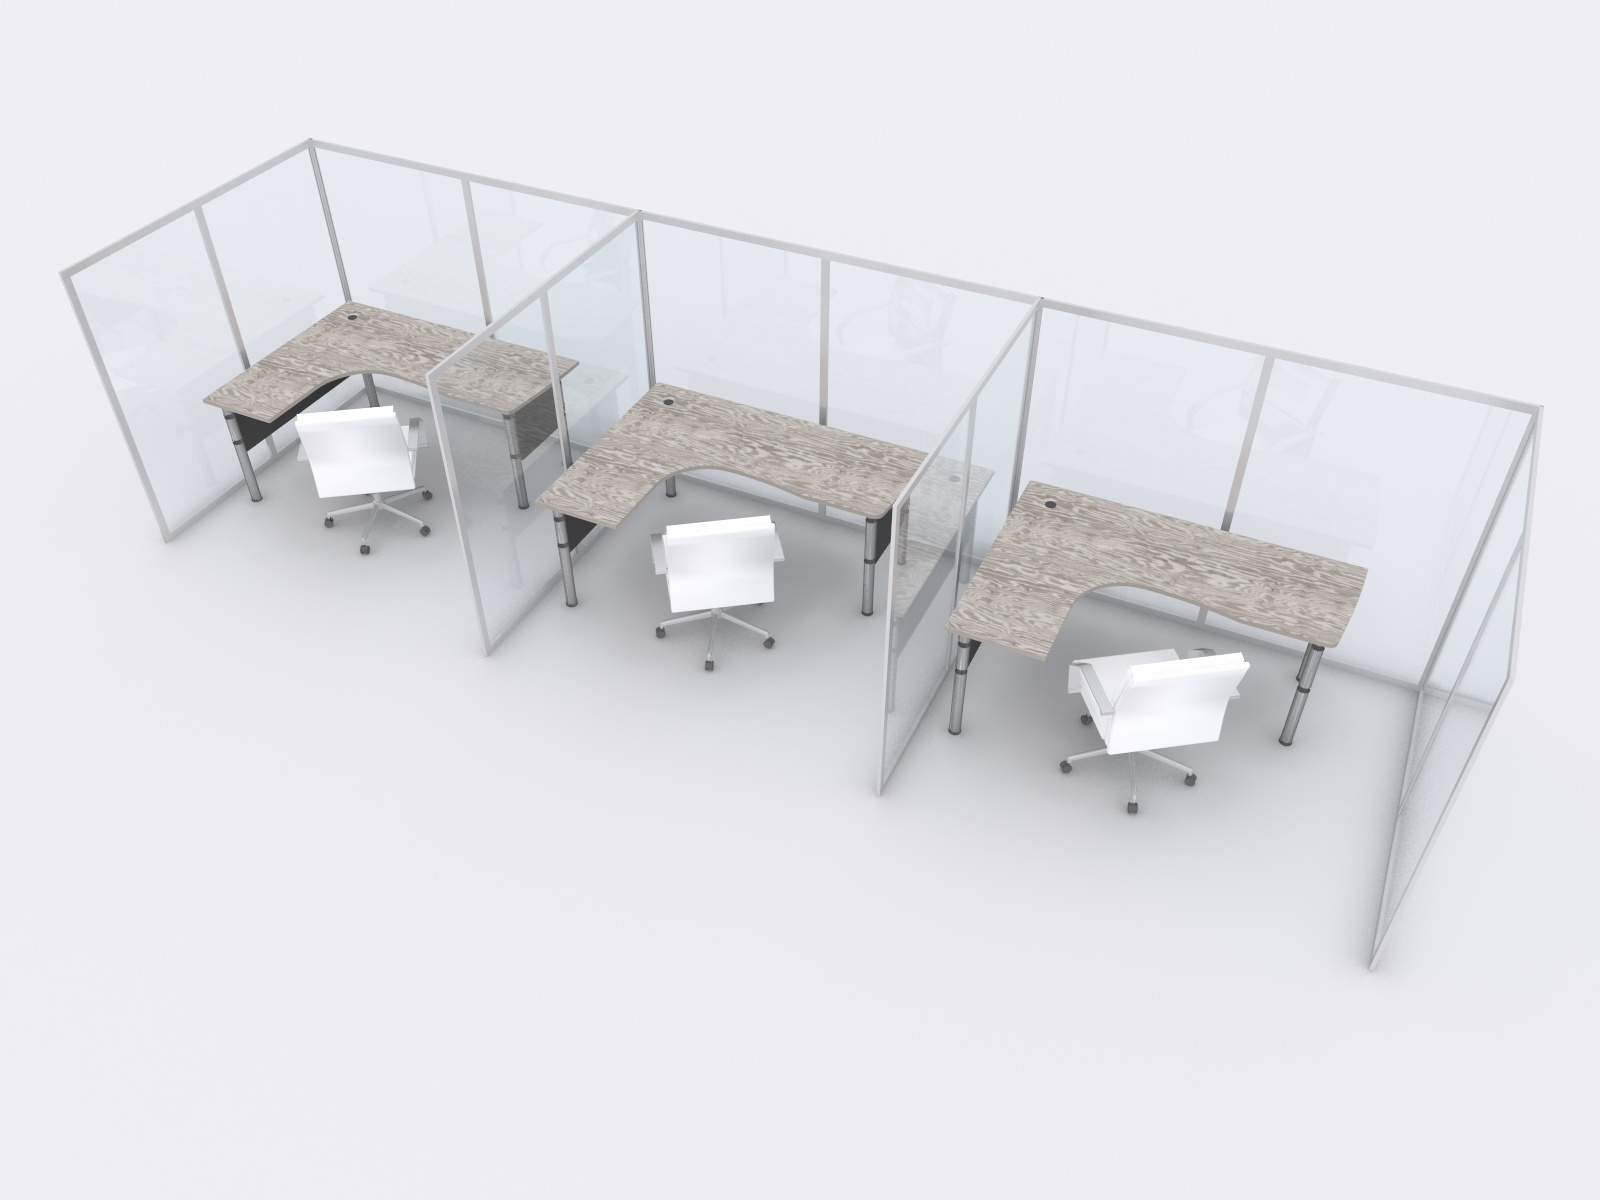 050520-Office-Pod-Triple-Modul-38-and-46x72-View-20000